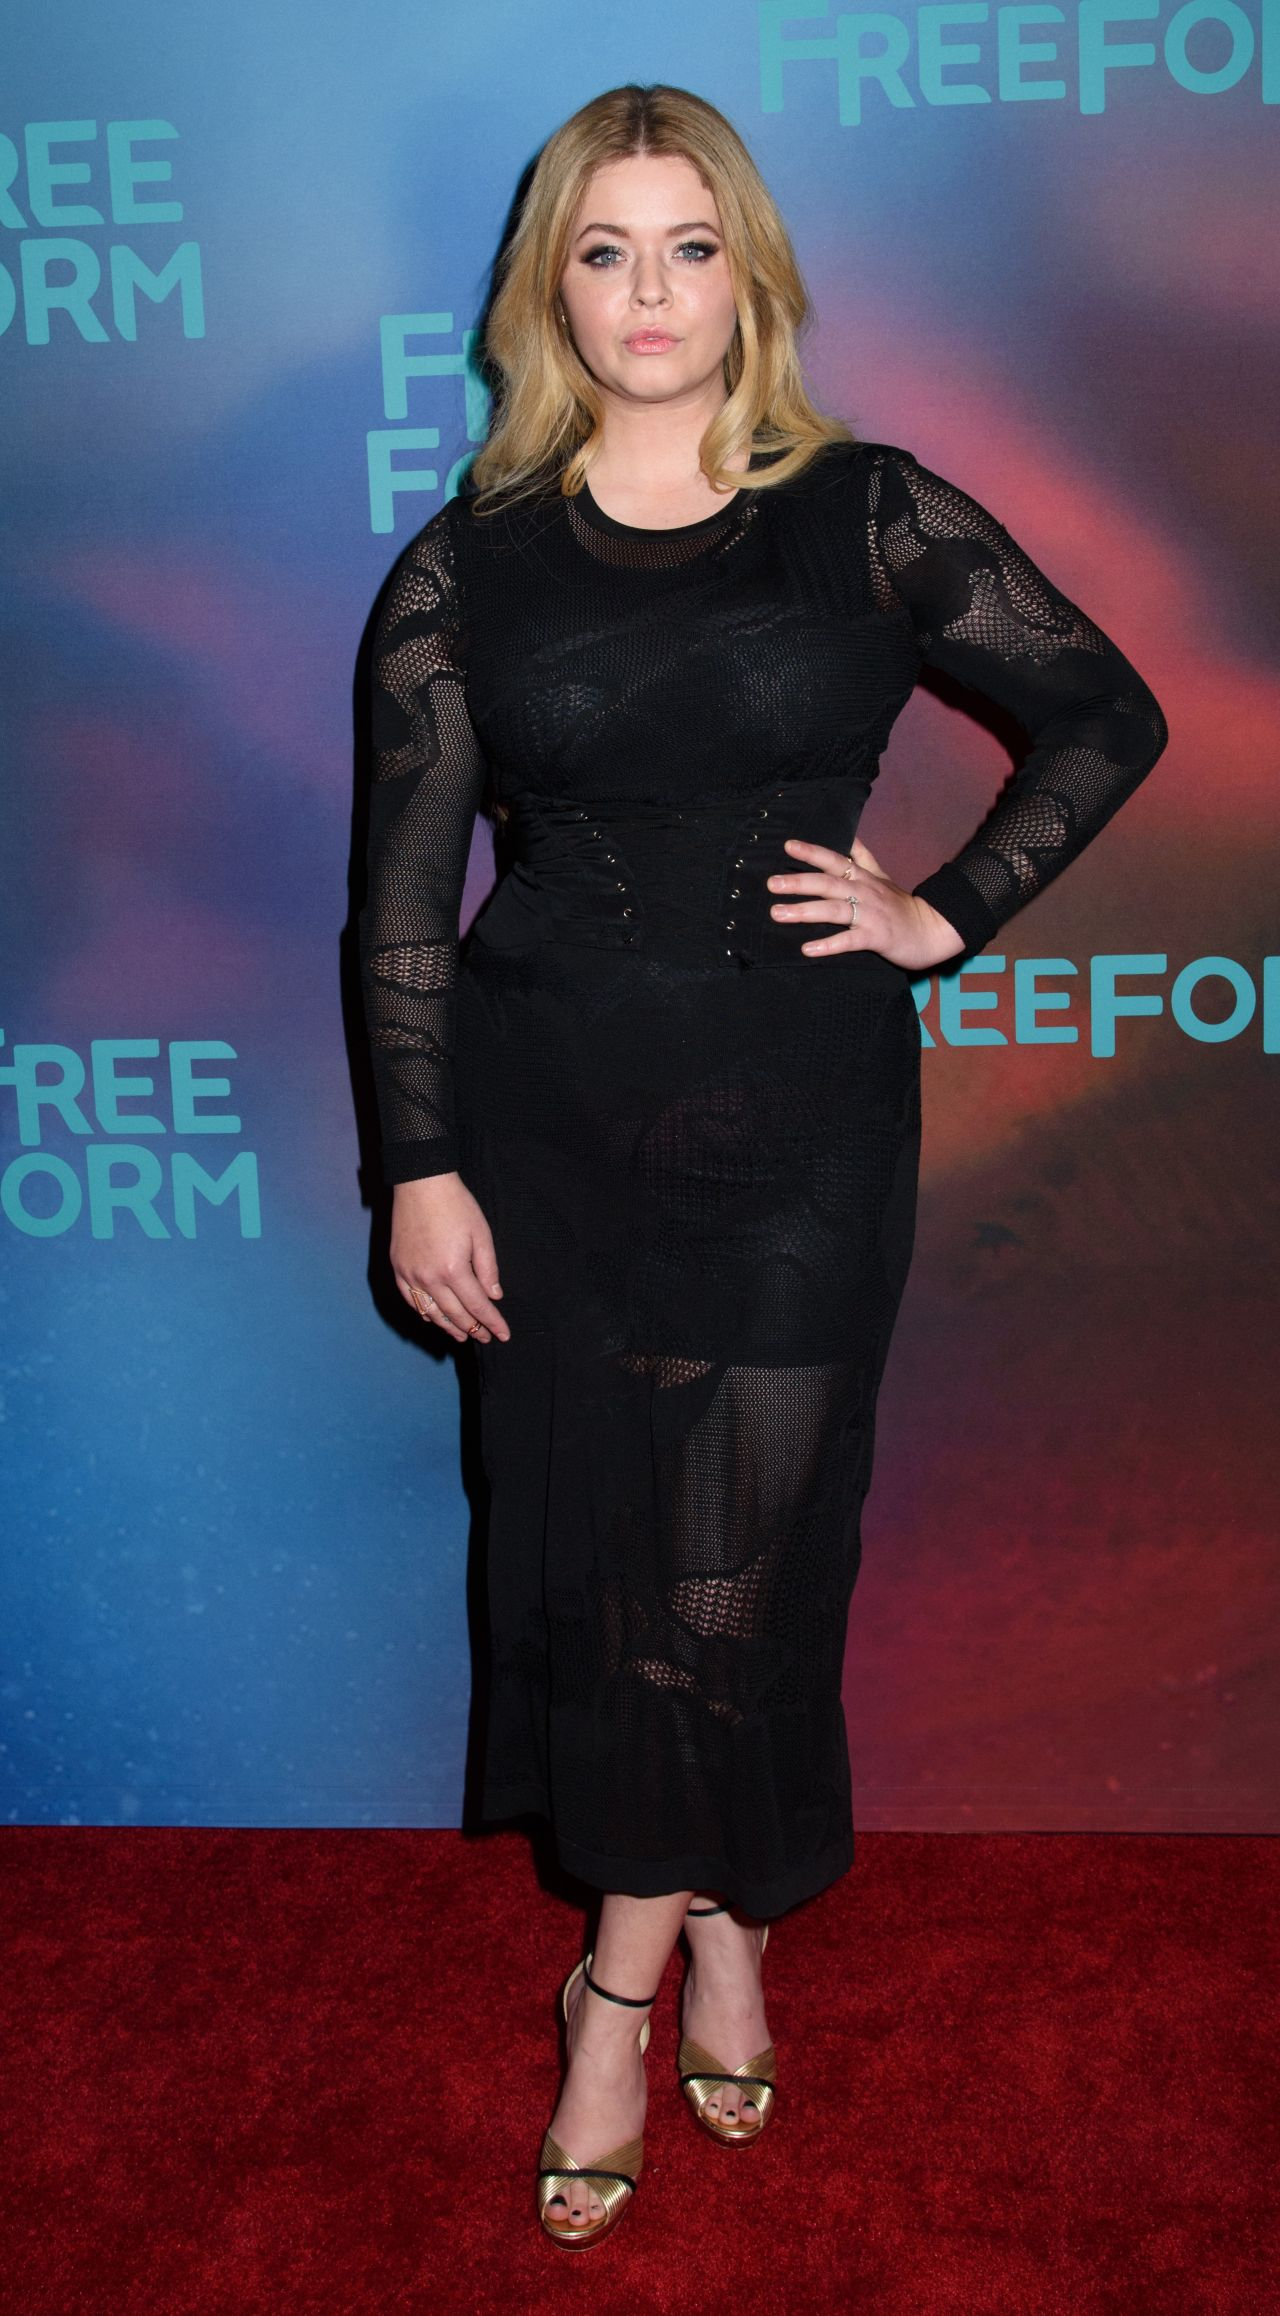 sasha pieterse at freeform upfront in new york 4192017